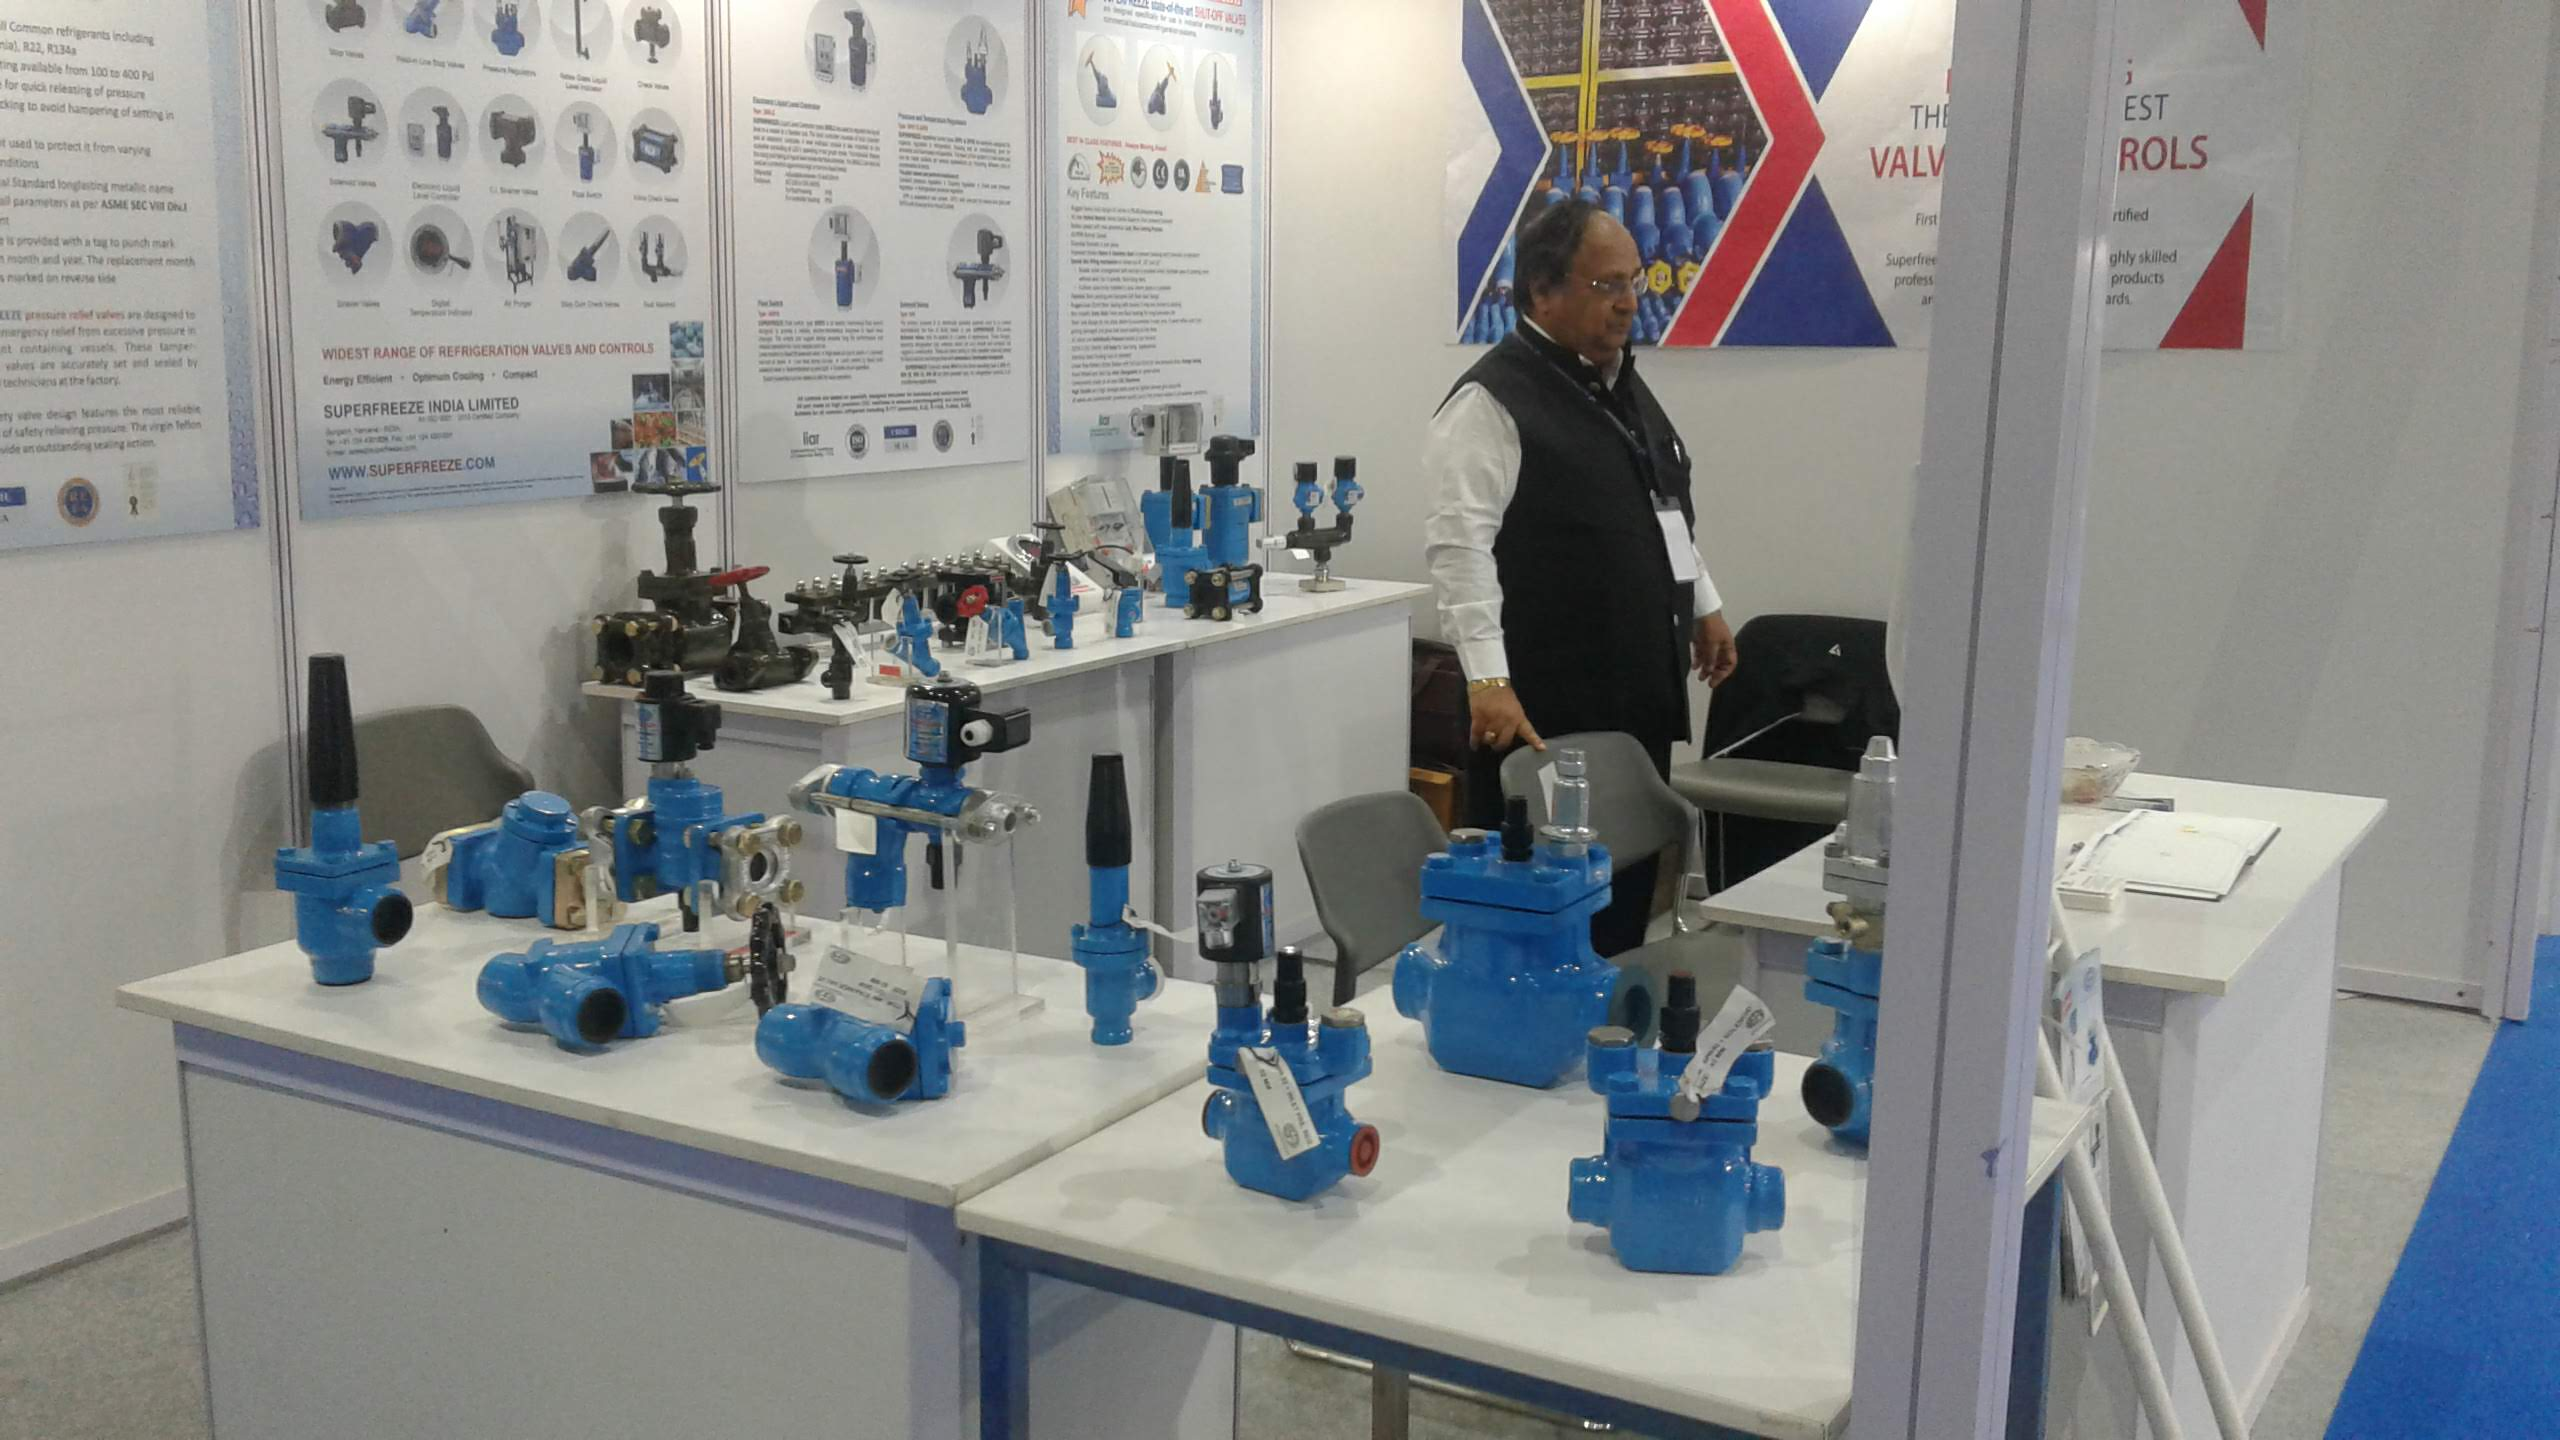 INDIA COLD CHAIN EXHIBITION MUMBAI 2018